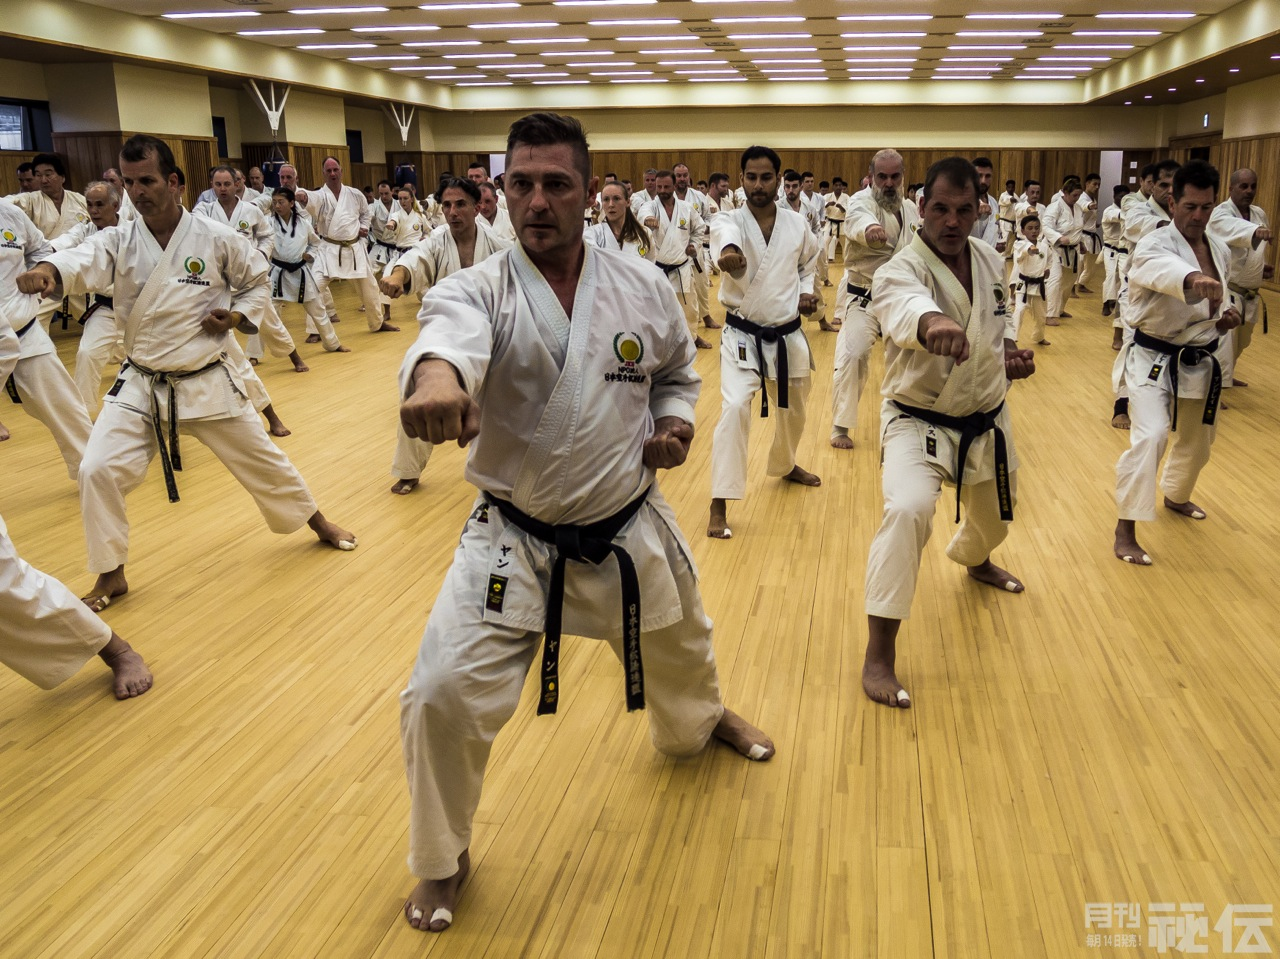 An afternoon of Shotokan:  Japan Karate Shoto Federation's International Seminar